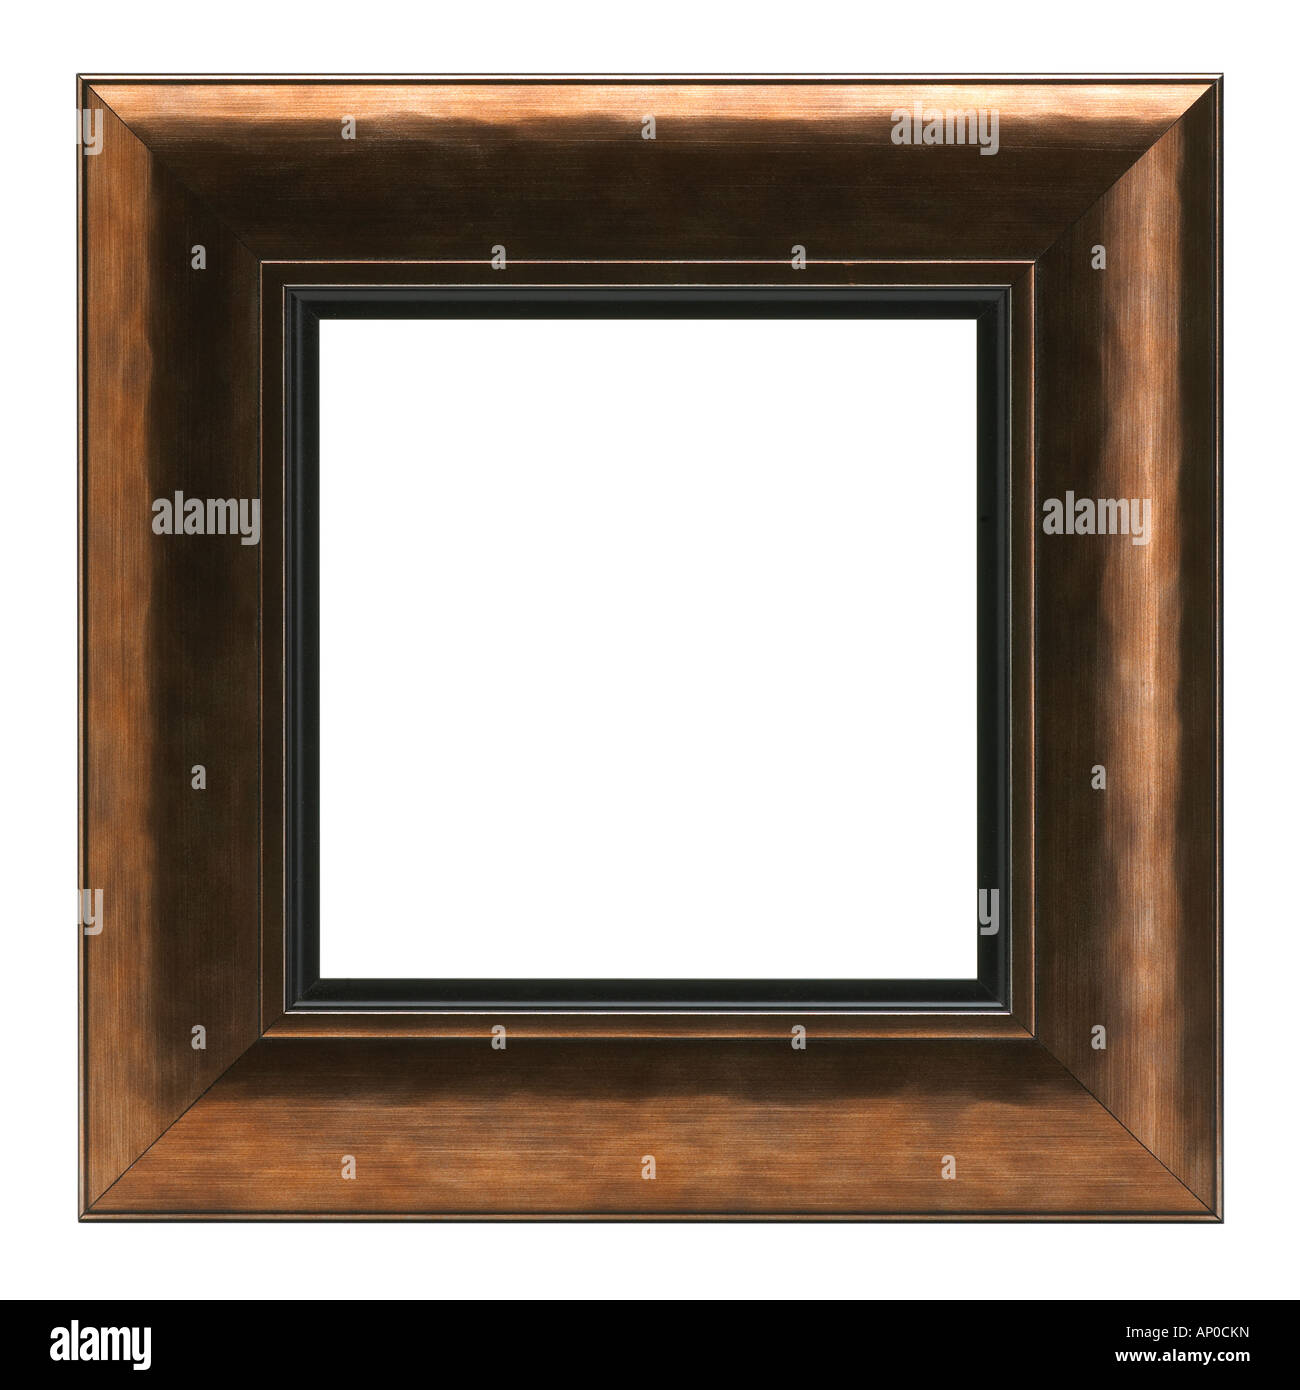 SQUARE GOLD AND DARK WOOD PICTURE FRAME ON WHITE BACKGROUND Stock ...